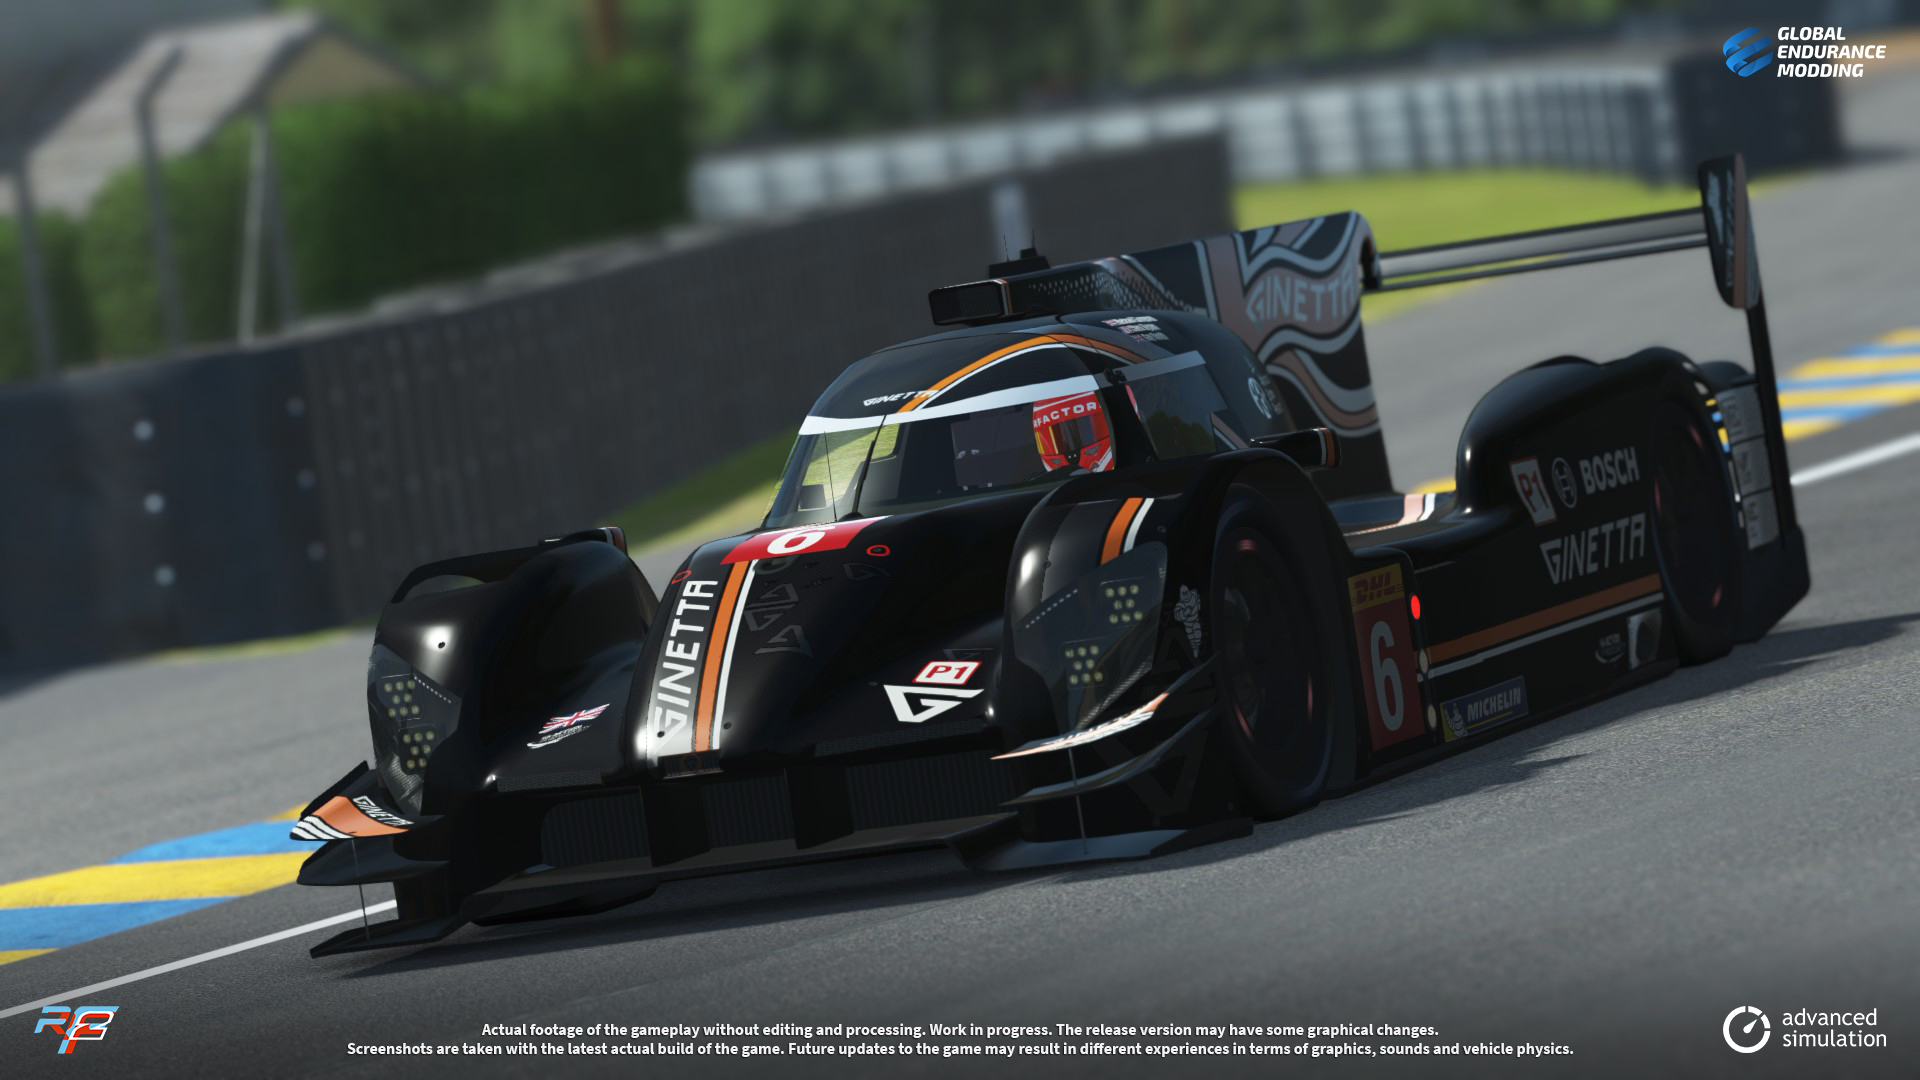 screen-007 Ginetta G60-LT-P1 LMP1 for rFactor 2 – More Previews